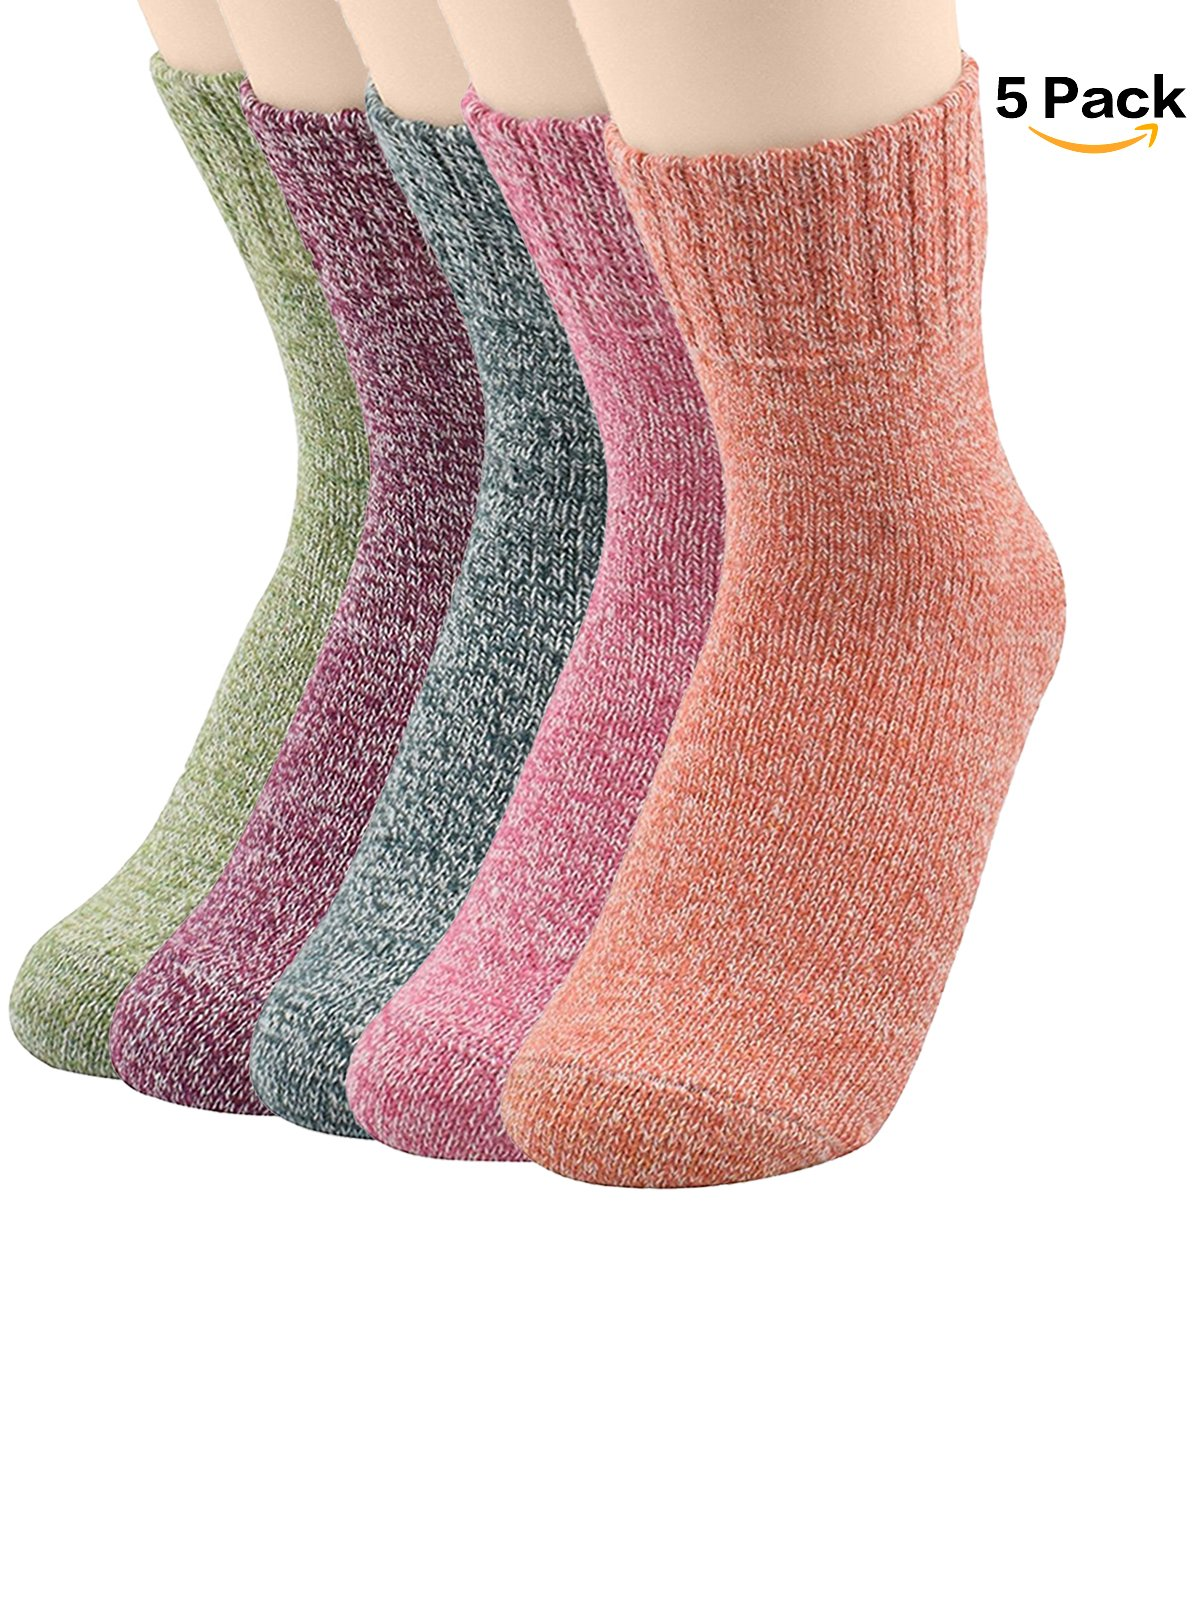 Zando Womens Pack of 3-5 Mixed Color Thin Knit Animal Printed Casual Wool Crew Socks for Fall Winter 5 Pack - Solid Shoe Size 6-11